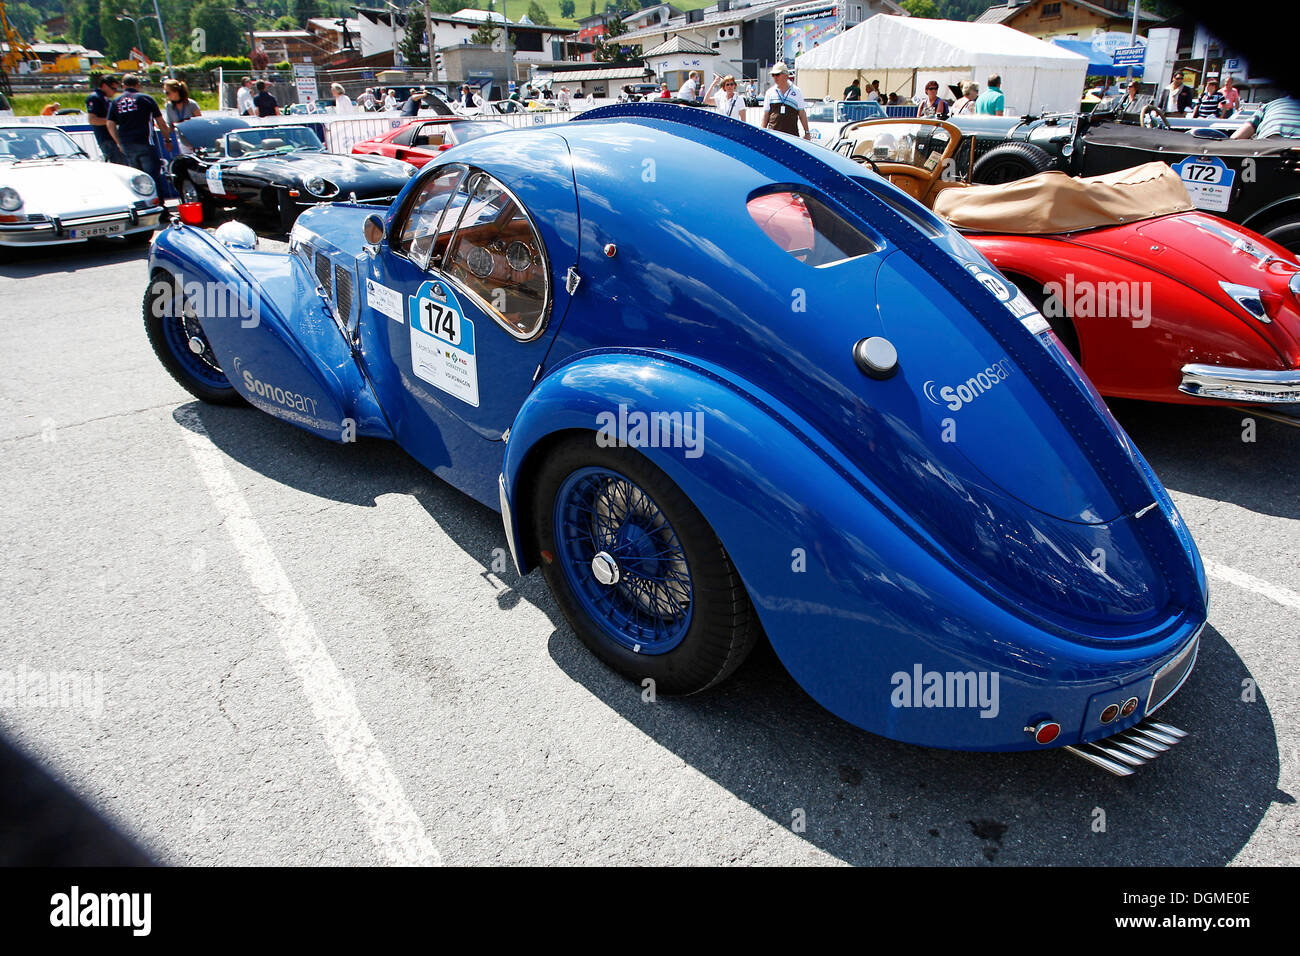 Bugatti 57 SC Atlantic, 1937 model, iconic car, only four cars ever produced, this being the fourth, re-built from original - Stock Image